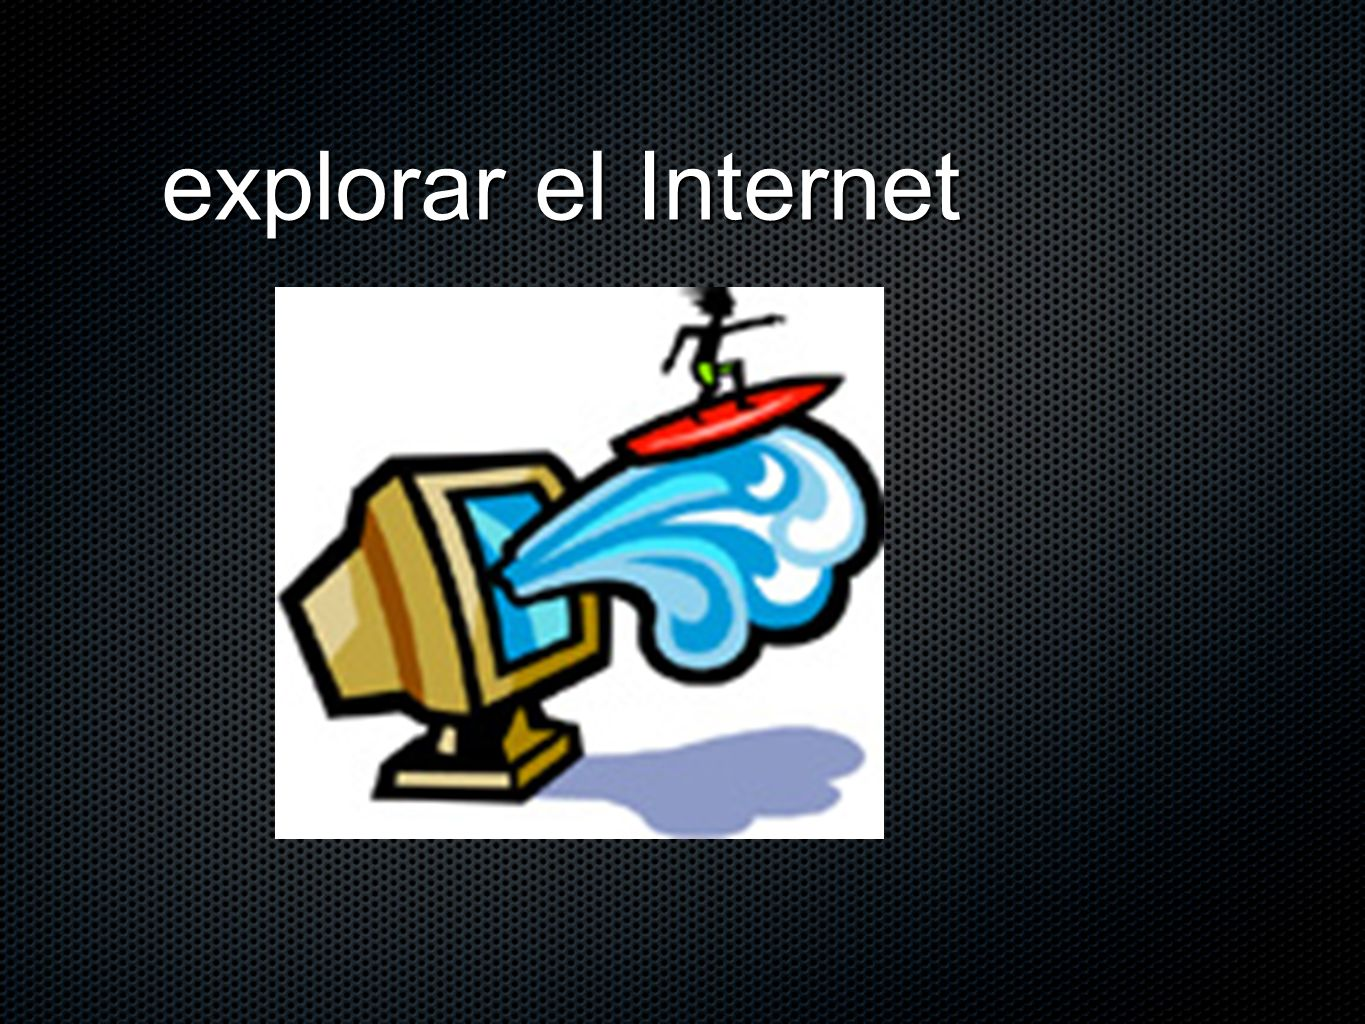 explorar el Internet